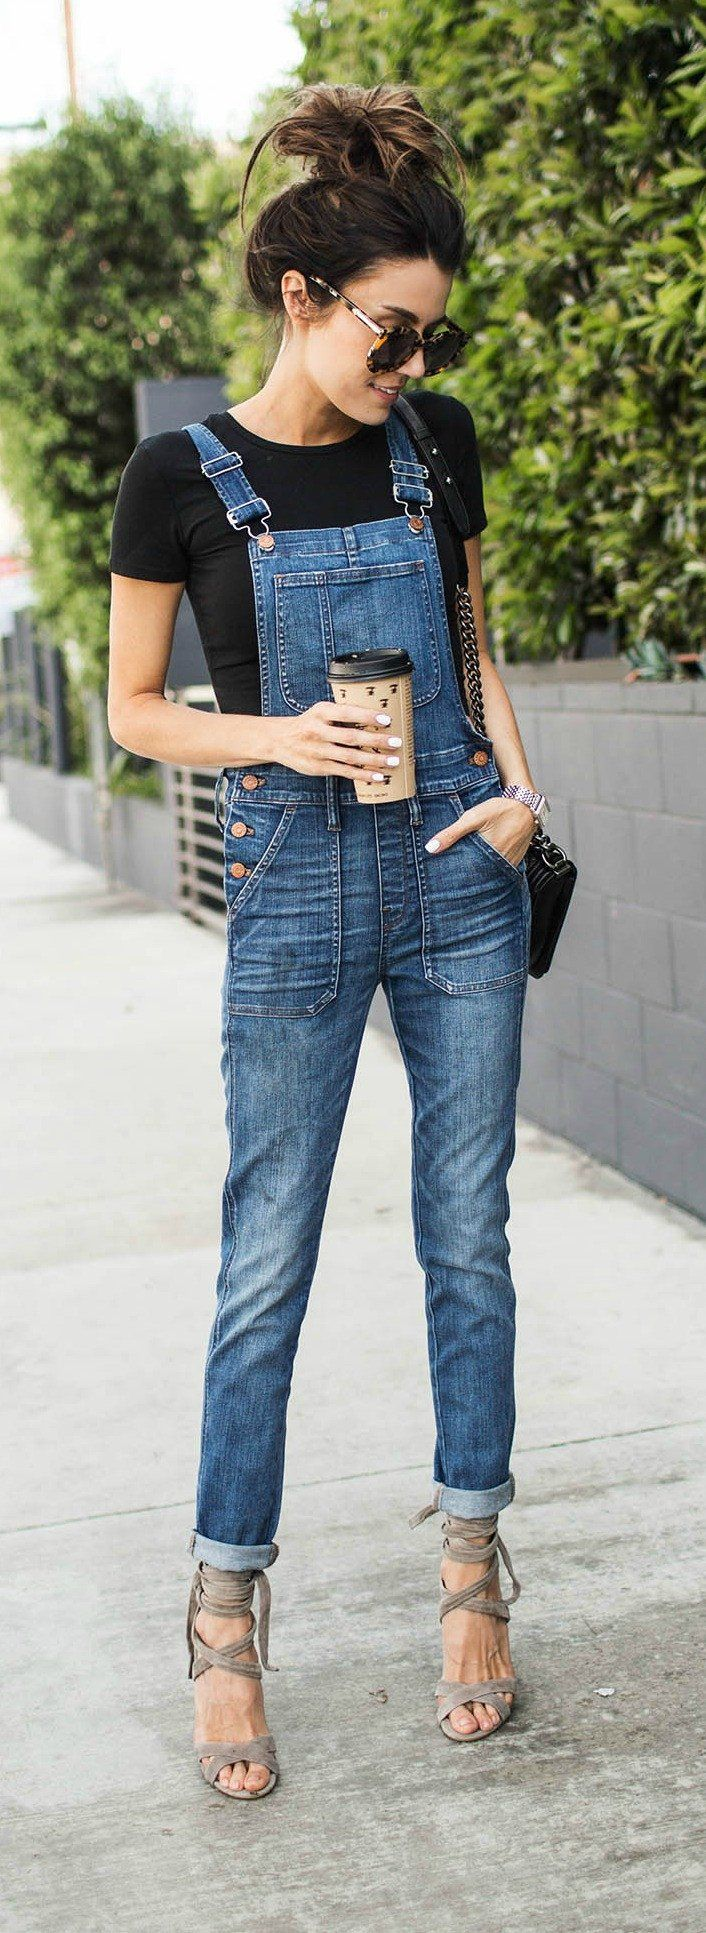 Black Tee & Denim Overall & Grey Laced Up Sandals